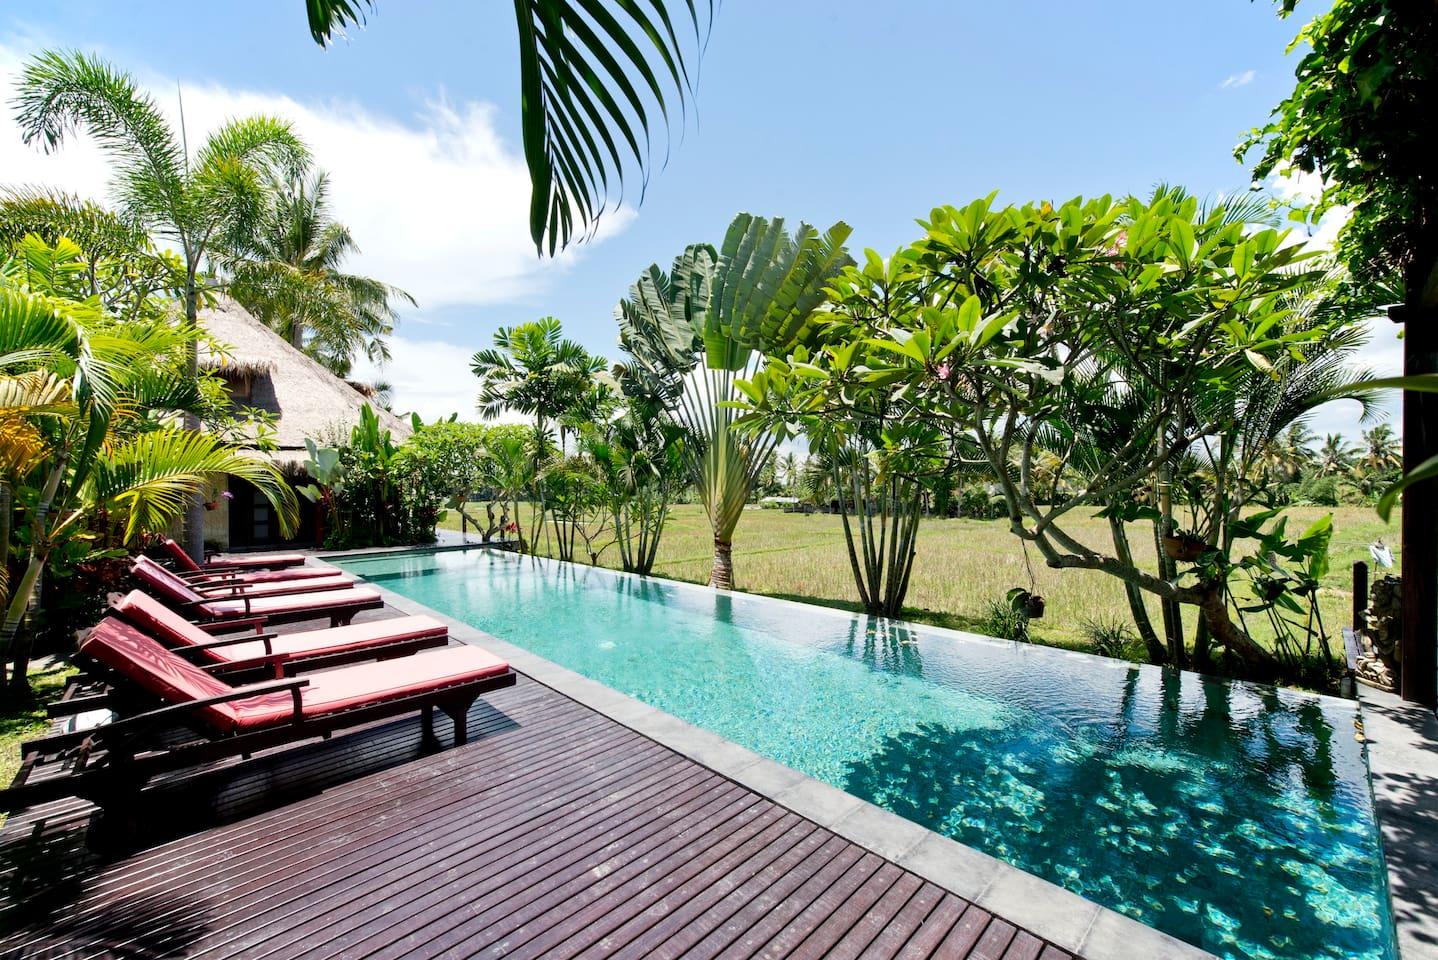 The best unobstructed views in Ubud